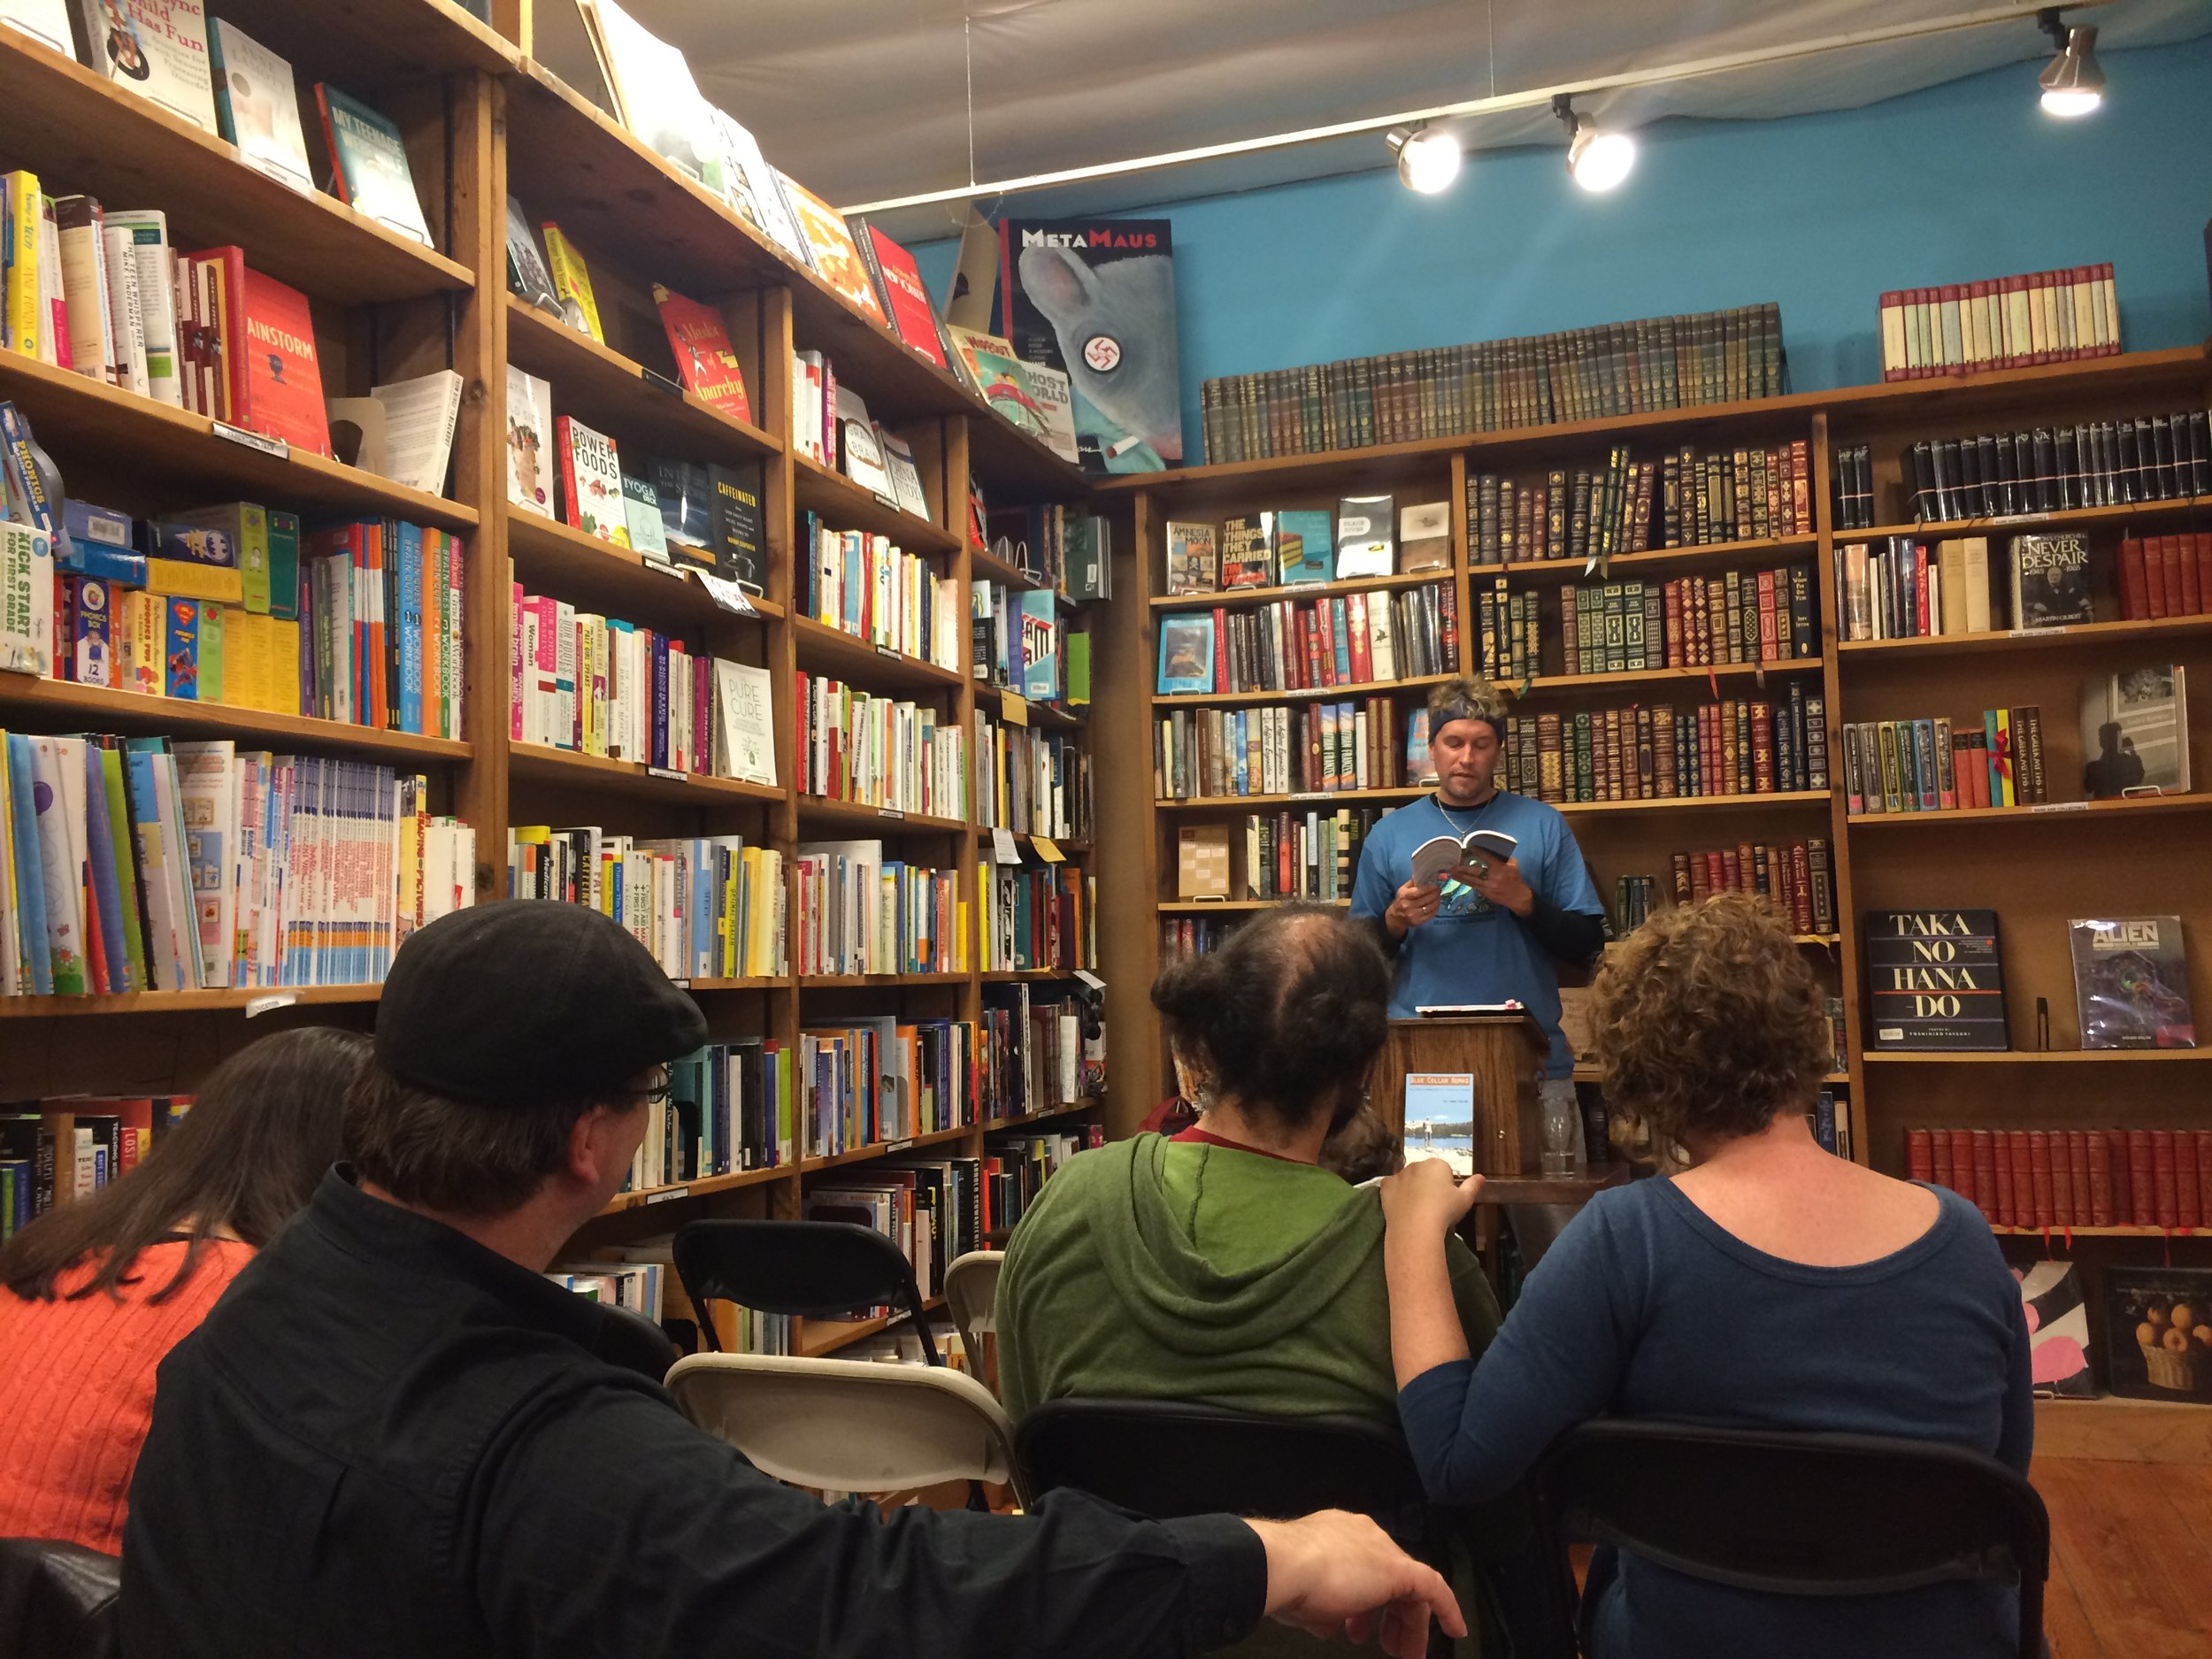 Jake reading at Ravenna - Third Place Books in Seattle